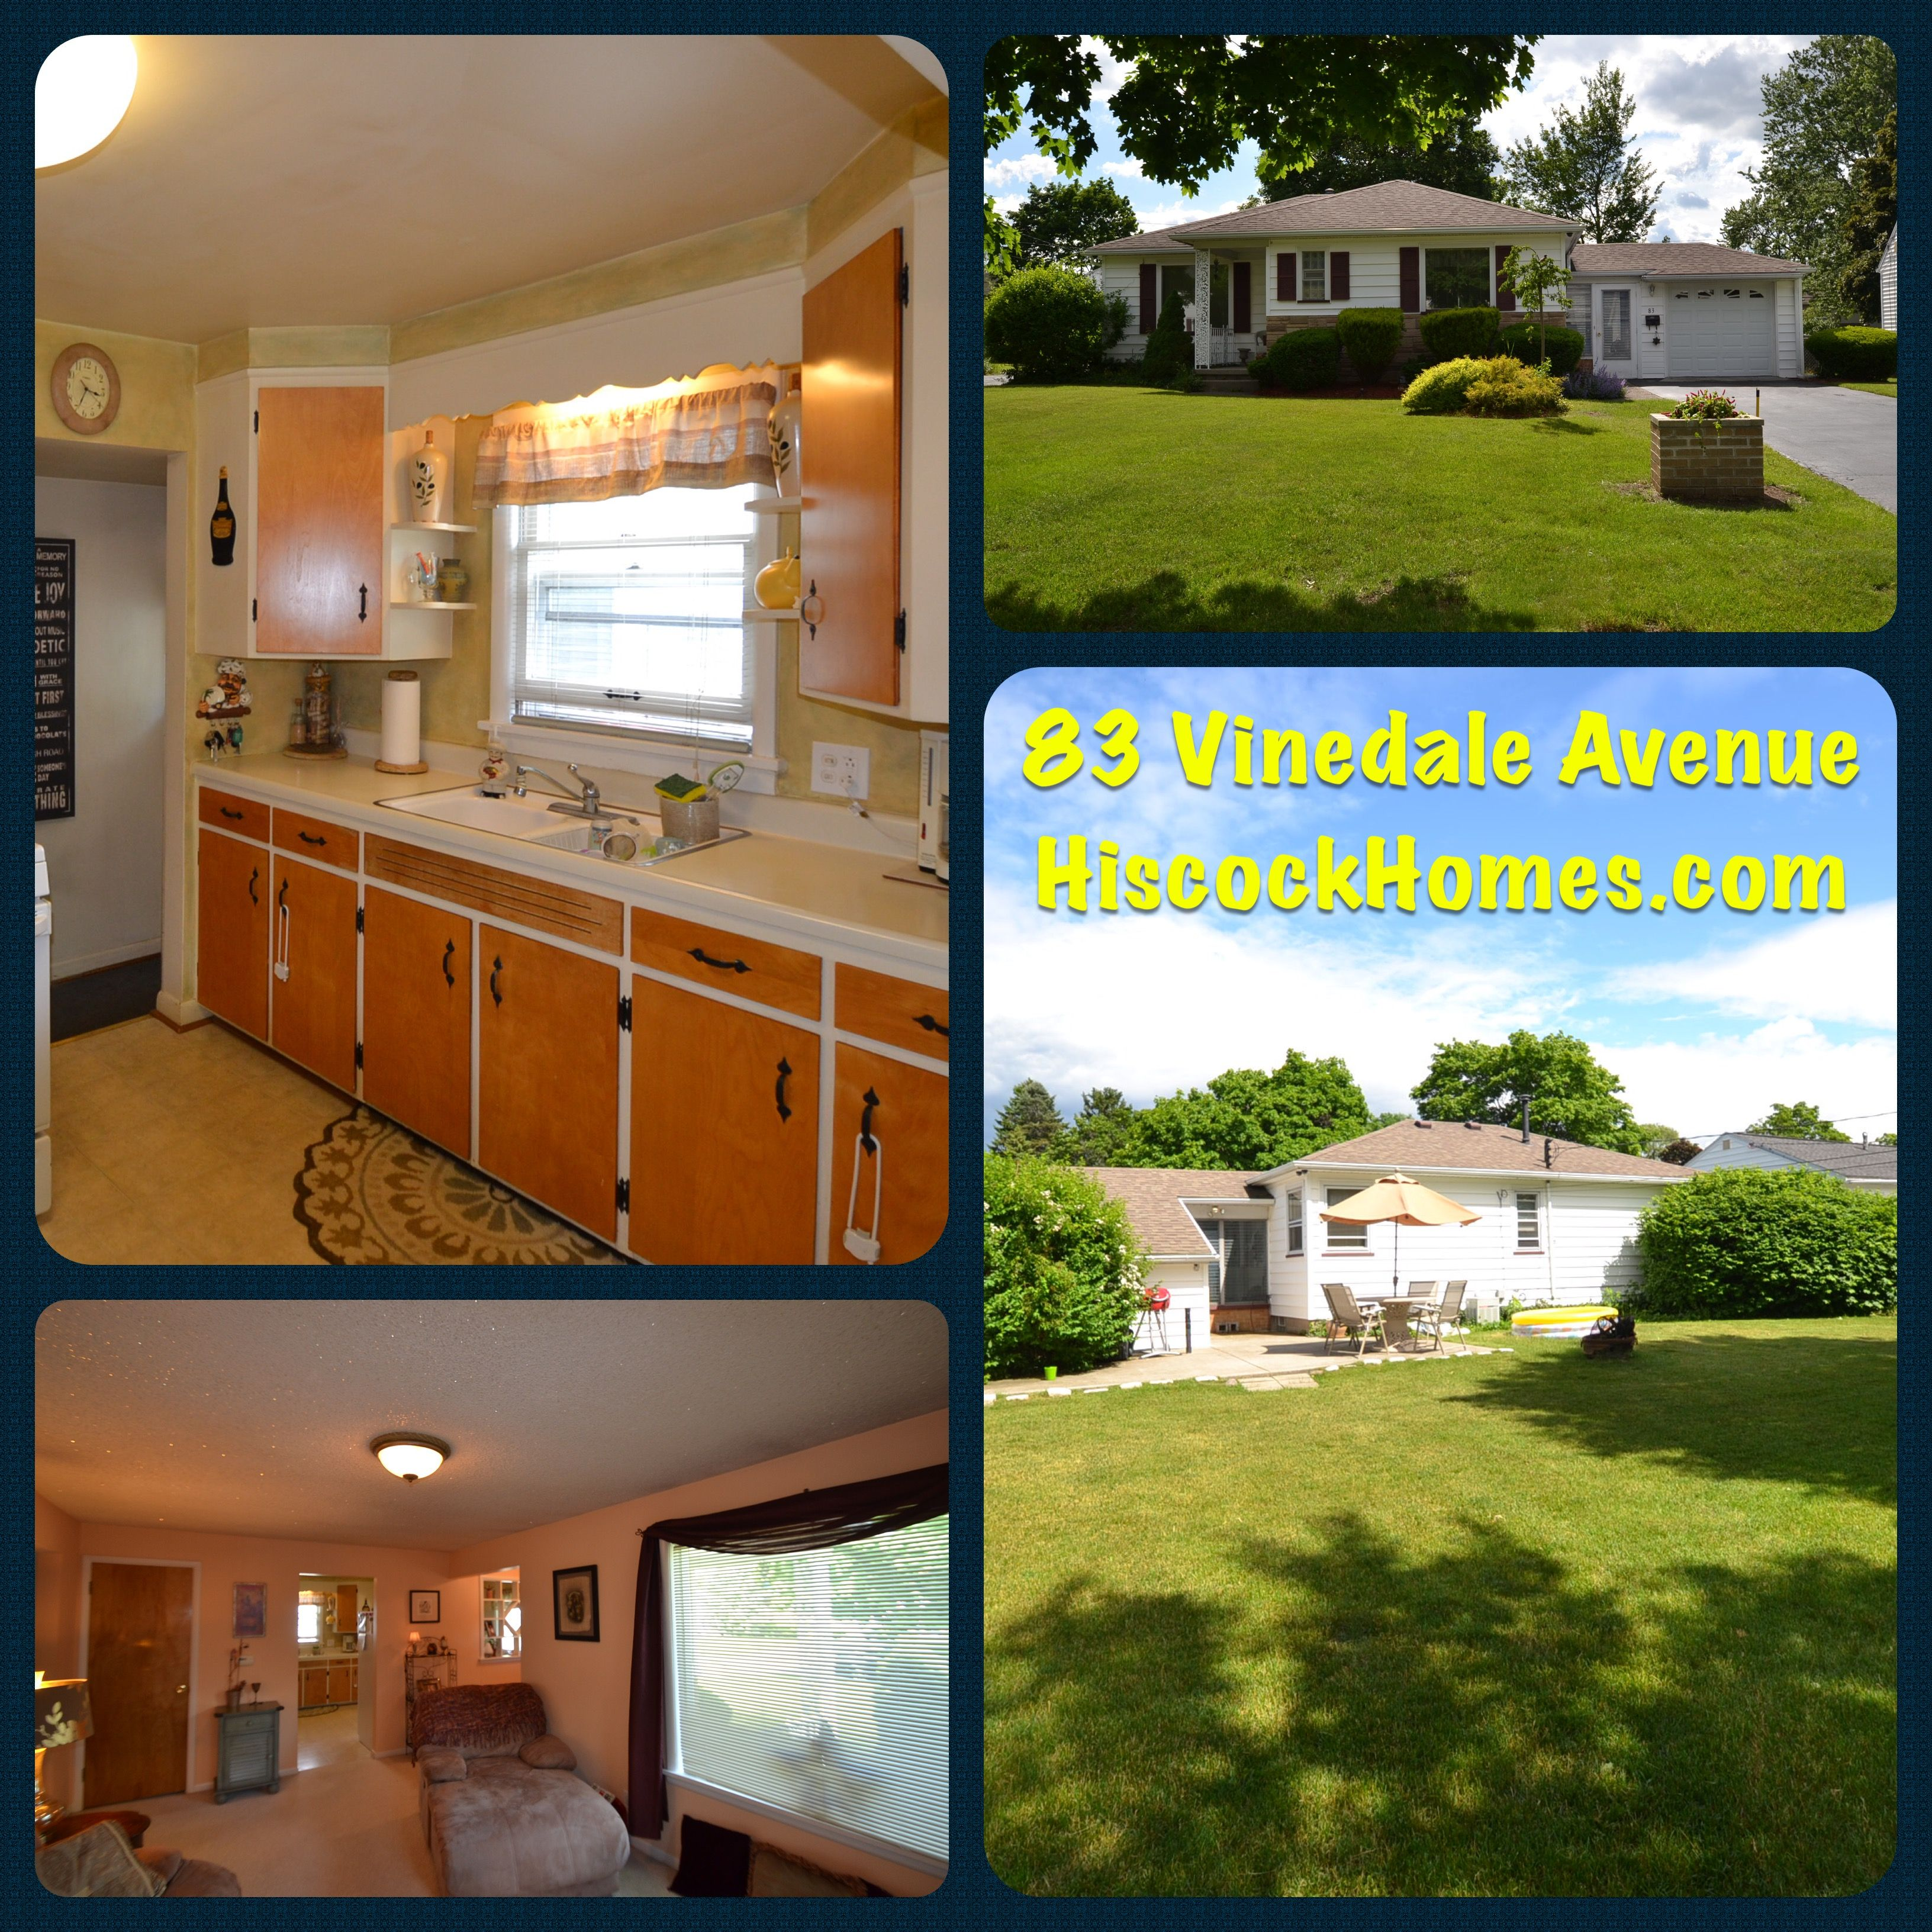 JUST LISTED! 83 Vinedale Avenue, Irondequoit, NY 14622 is ...